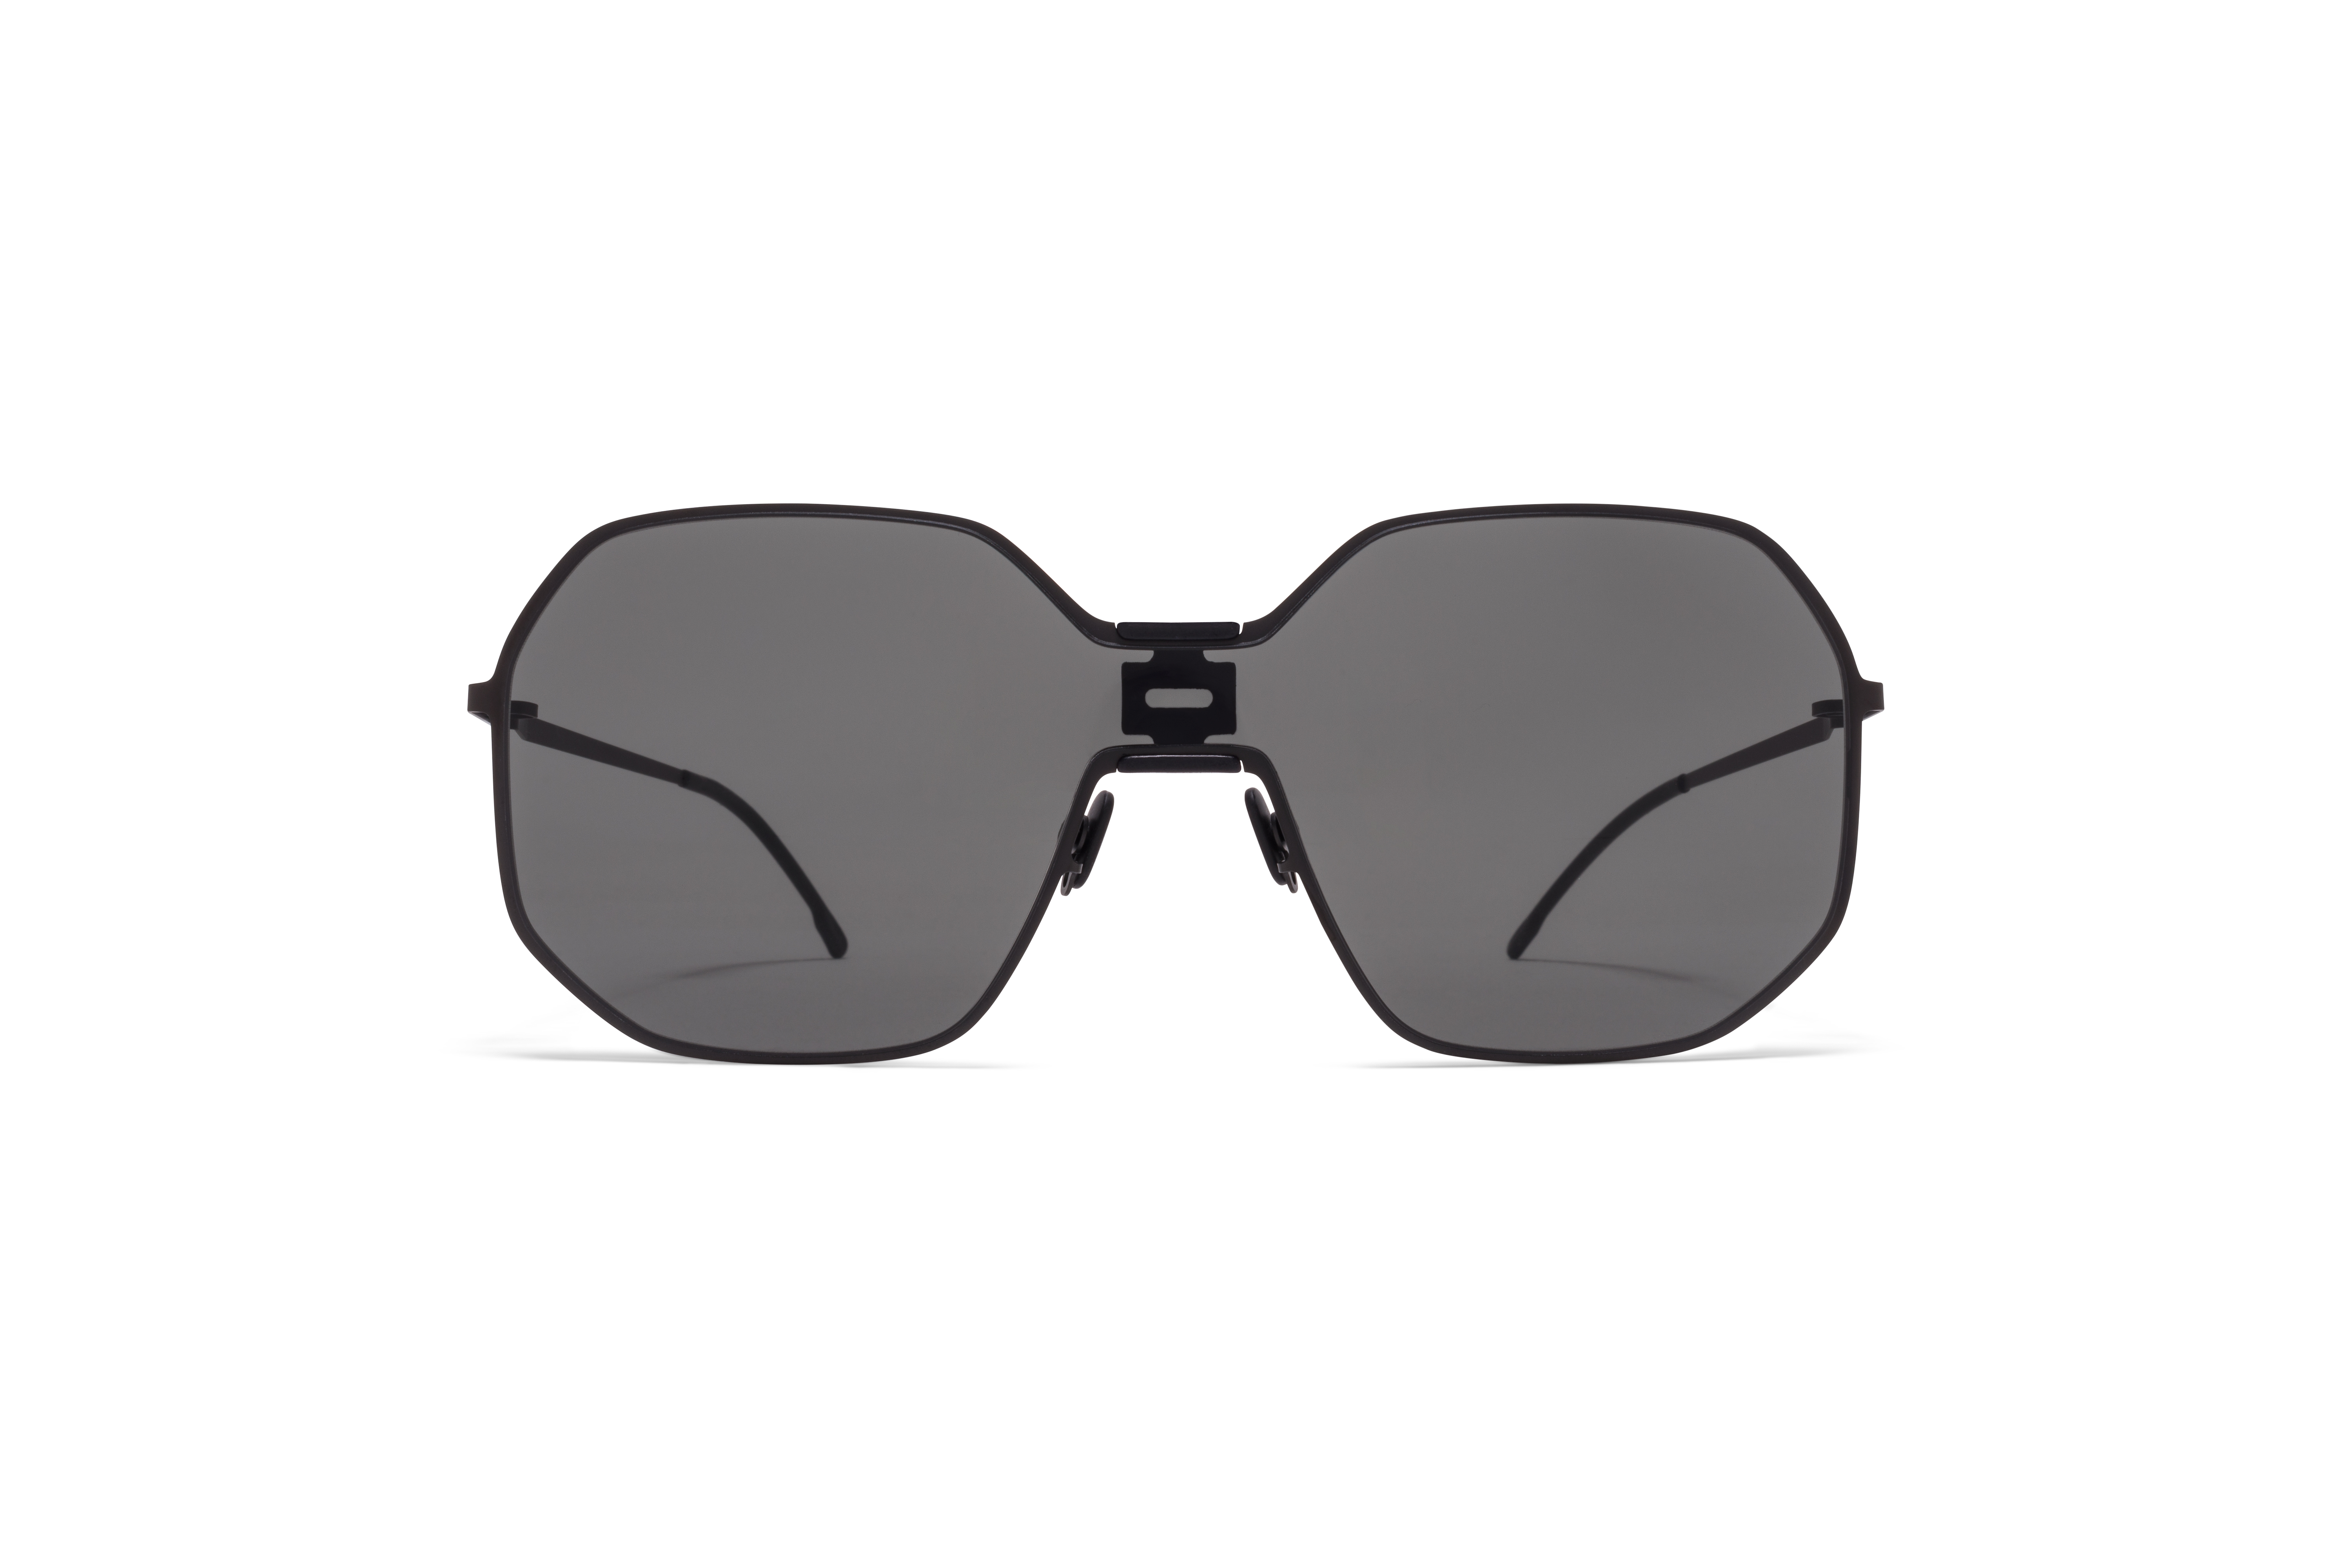 MYKITA Mm Sun Mmecho003 Mh6 Pitch Black Black Dark Grey Solid Shield